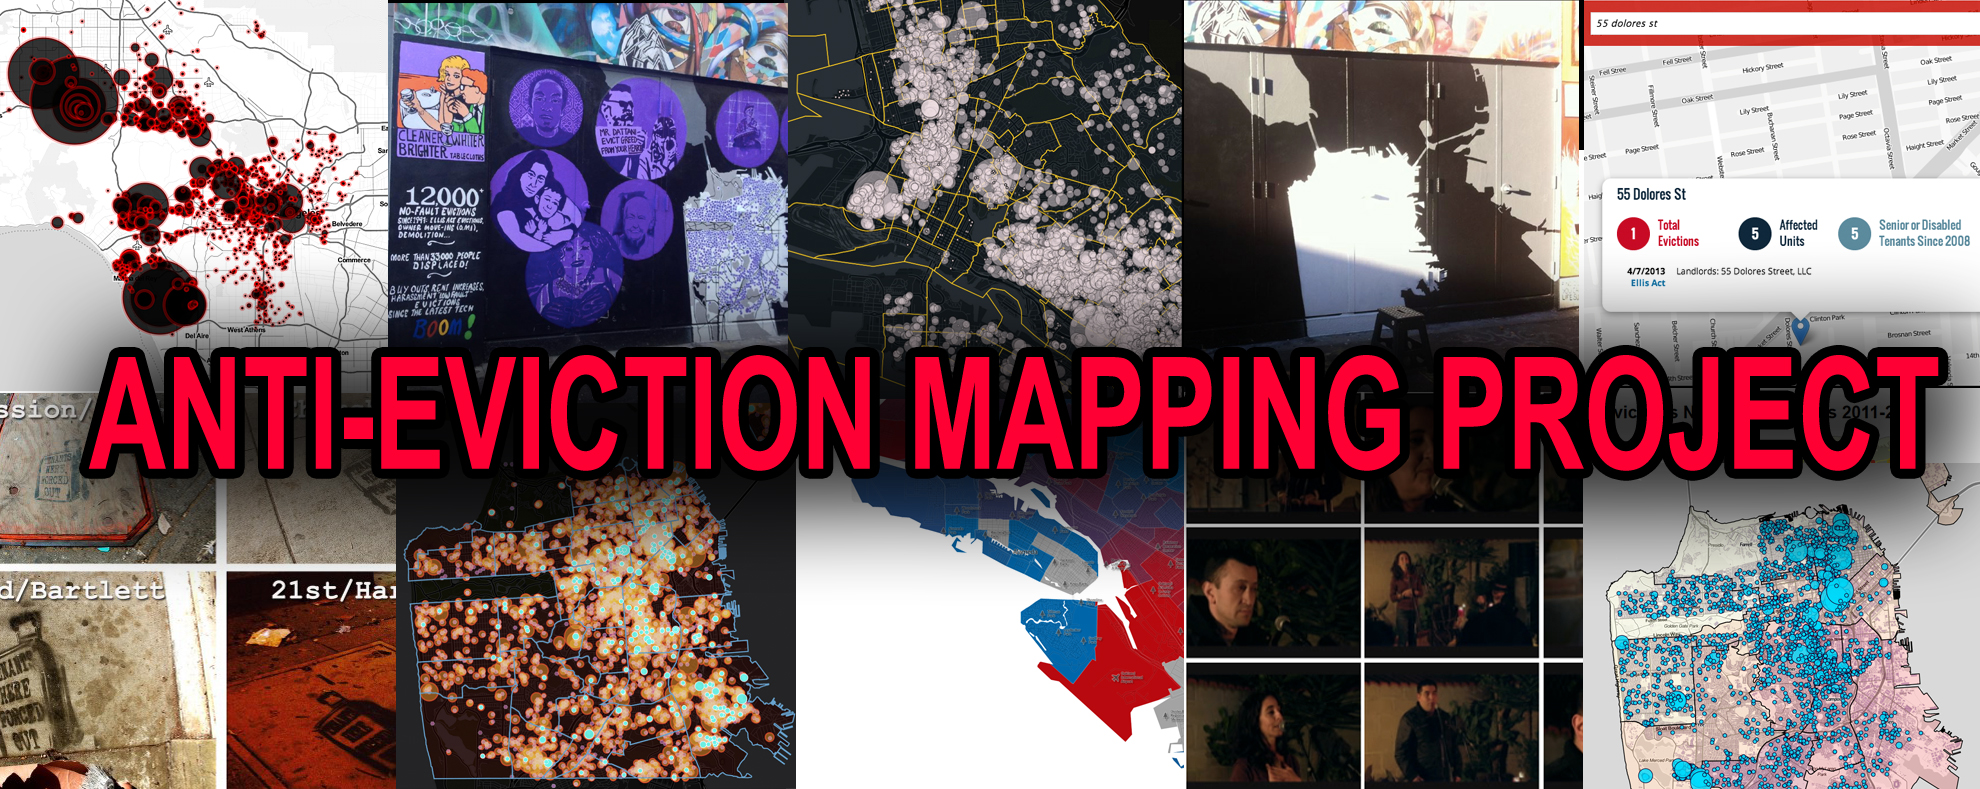 The Anti-Eviction Mapping Project